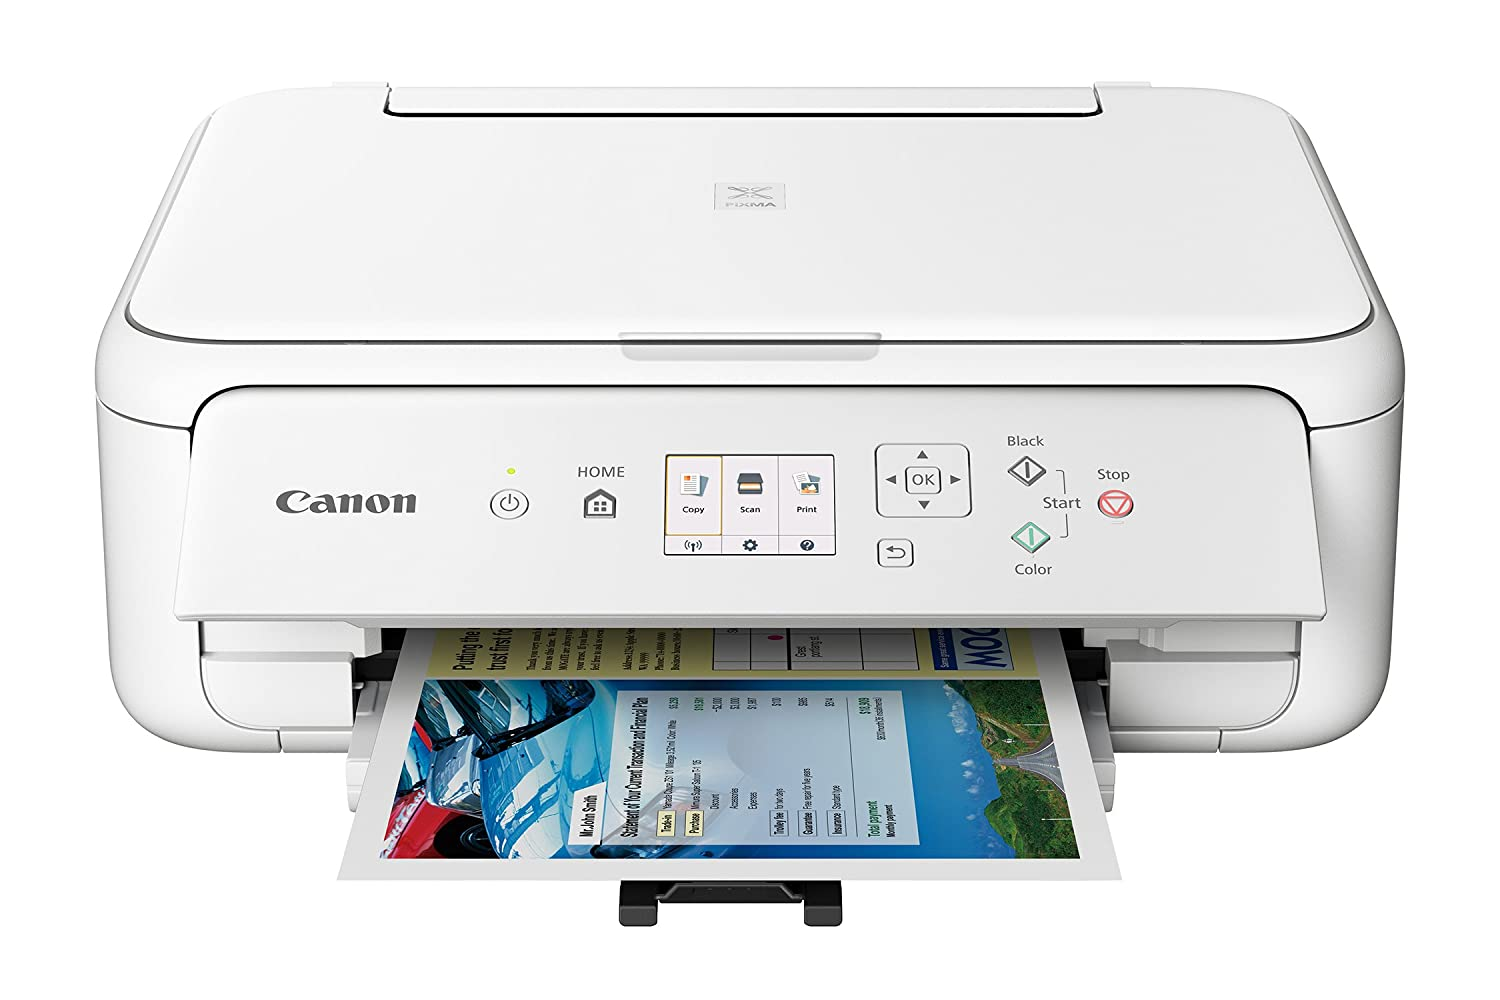 Canon TS5120 Wireless All-In-One Printer with Scanner and Copier: Mobile and Tablet Printing, with Airprint(TM) and Google Cloud Print compatible